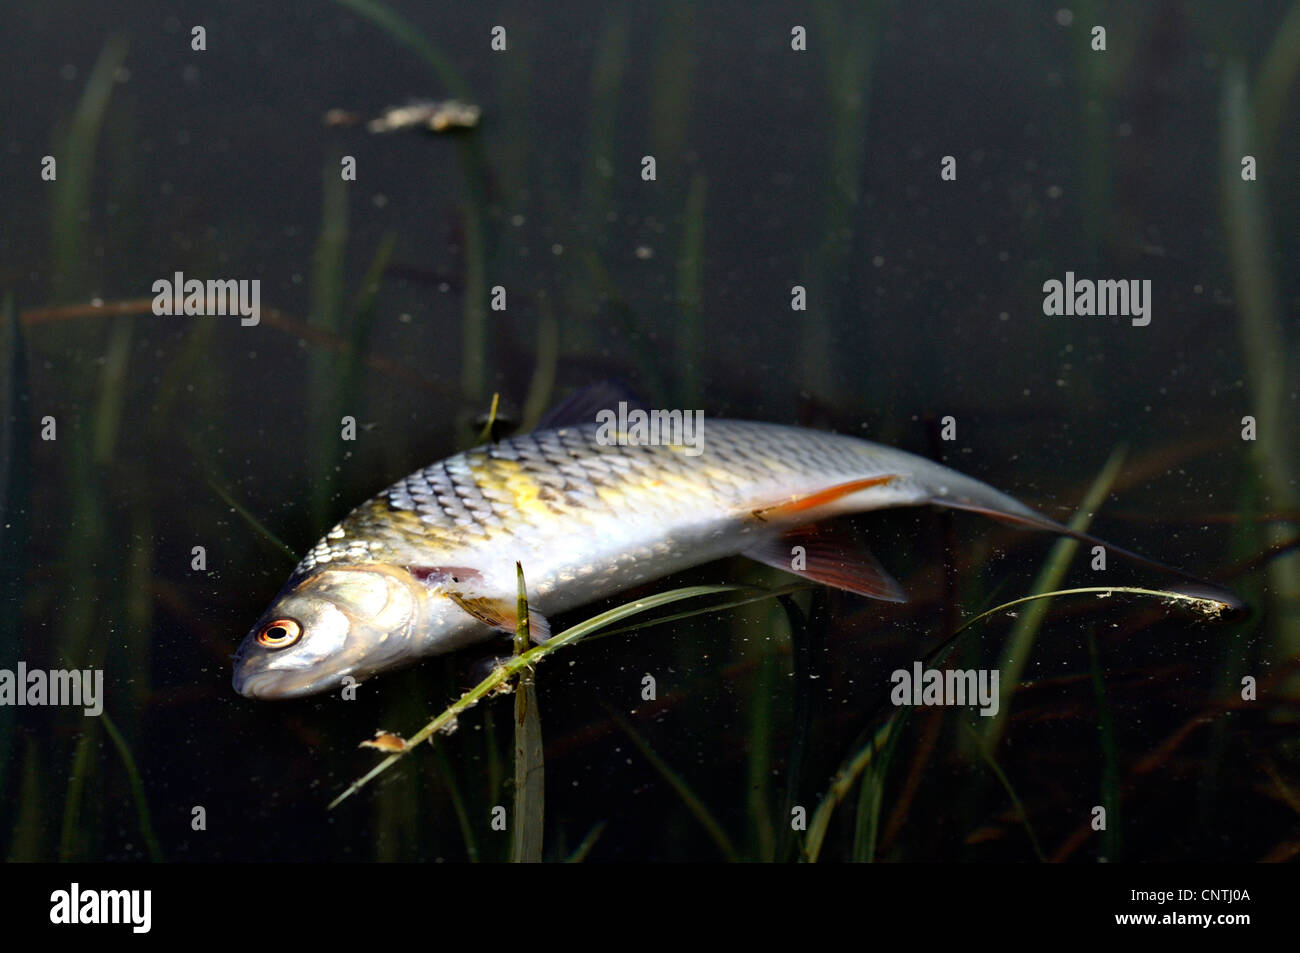 dead fish on a water surface, Germany, North Rhine-Westphalia - Stock Image